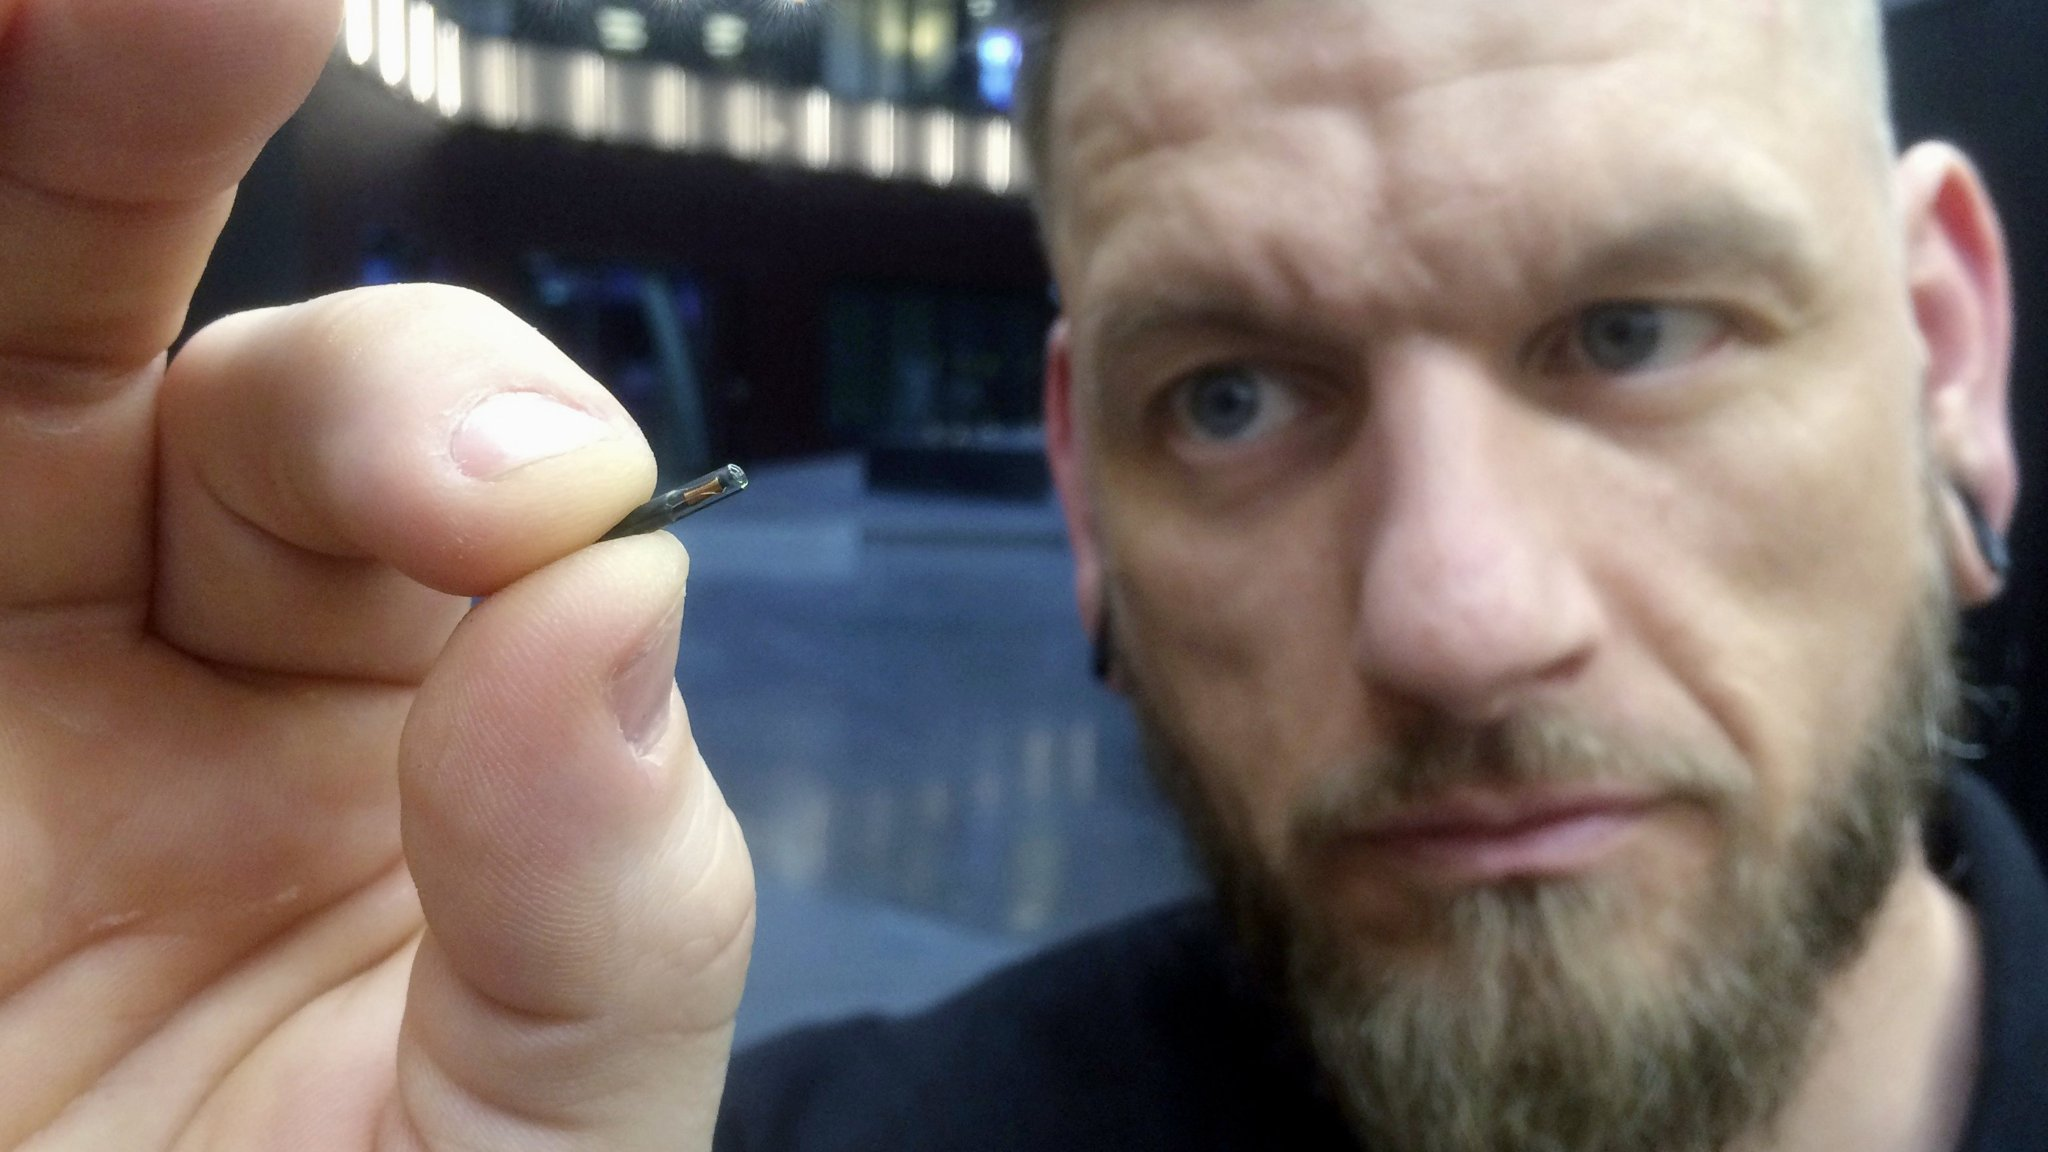 I am microchipped and have no regrets | Financial Times